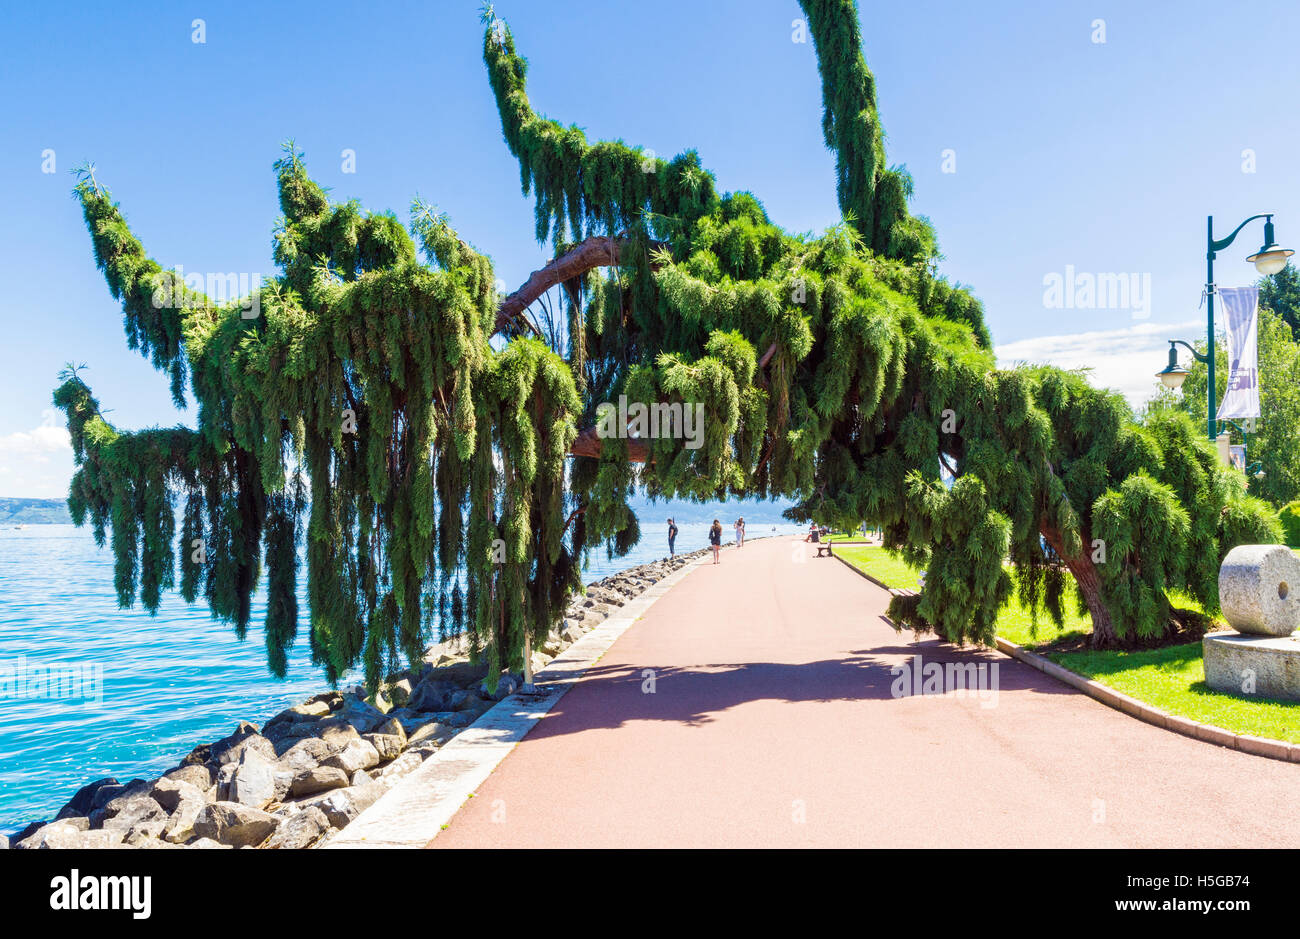 A weeping Giant Sequoia tree leaning over the waterfront promenade in Évian-les-Bains, France - Stock Image